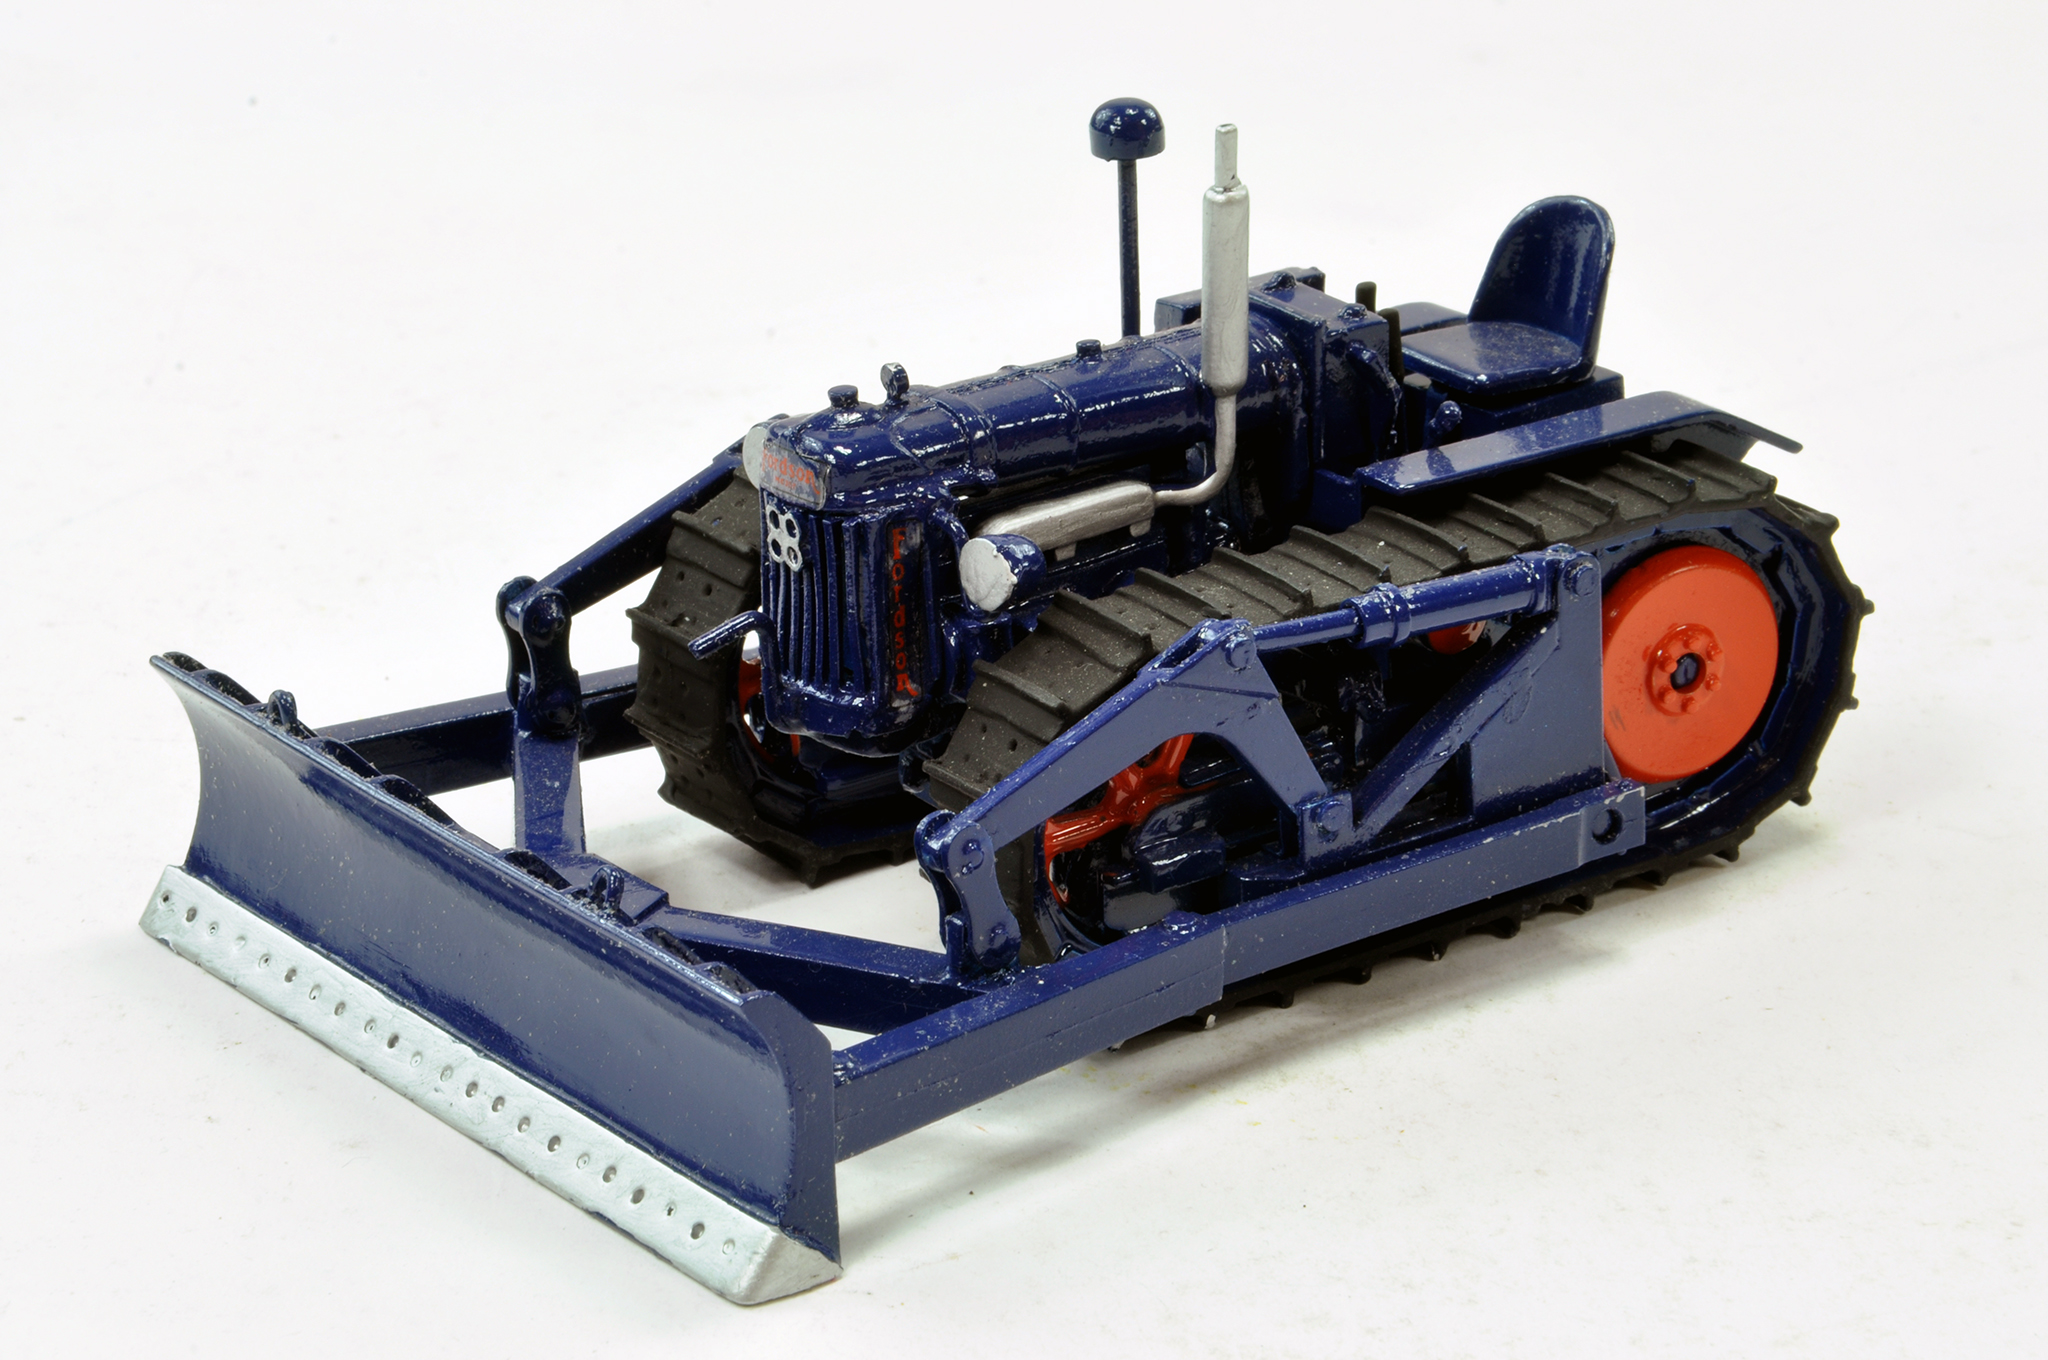 Lot 224 - Hand Built 1/32 Fordson Major E27N P6 Crawler Tractor with Dozer Blade. Superb piece is delicate but